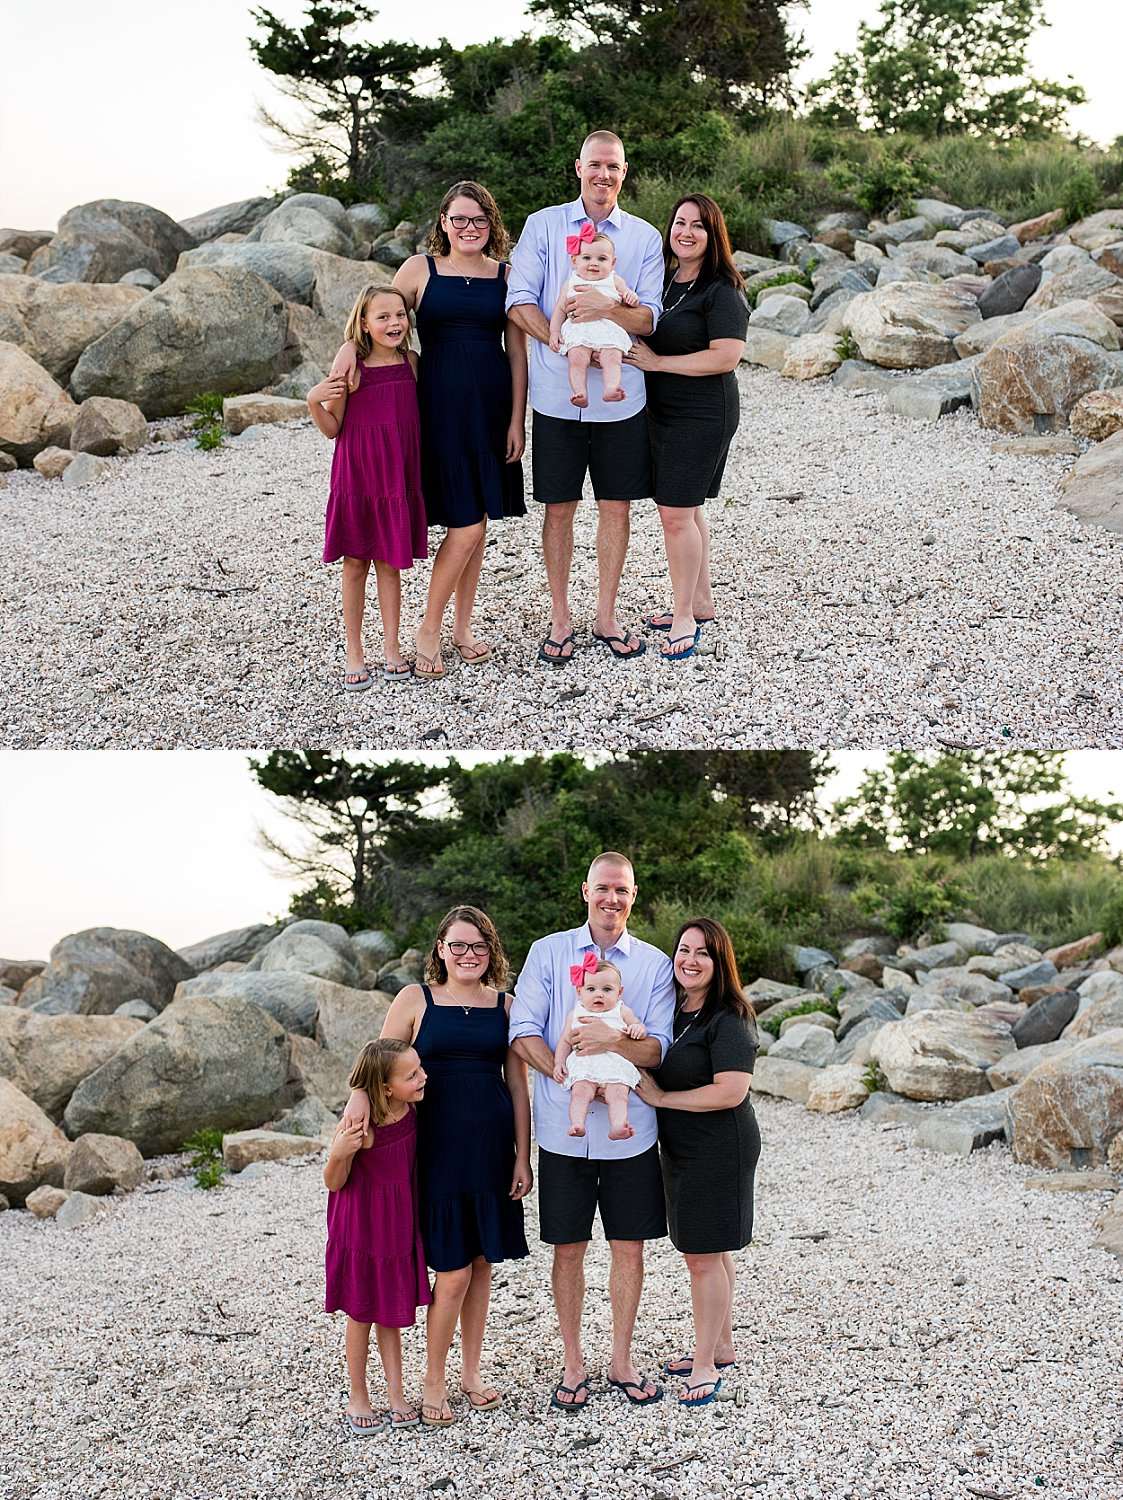 CT Baby photographer located in New Haven County. Family enjoying the sunset during their photo session.